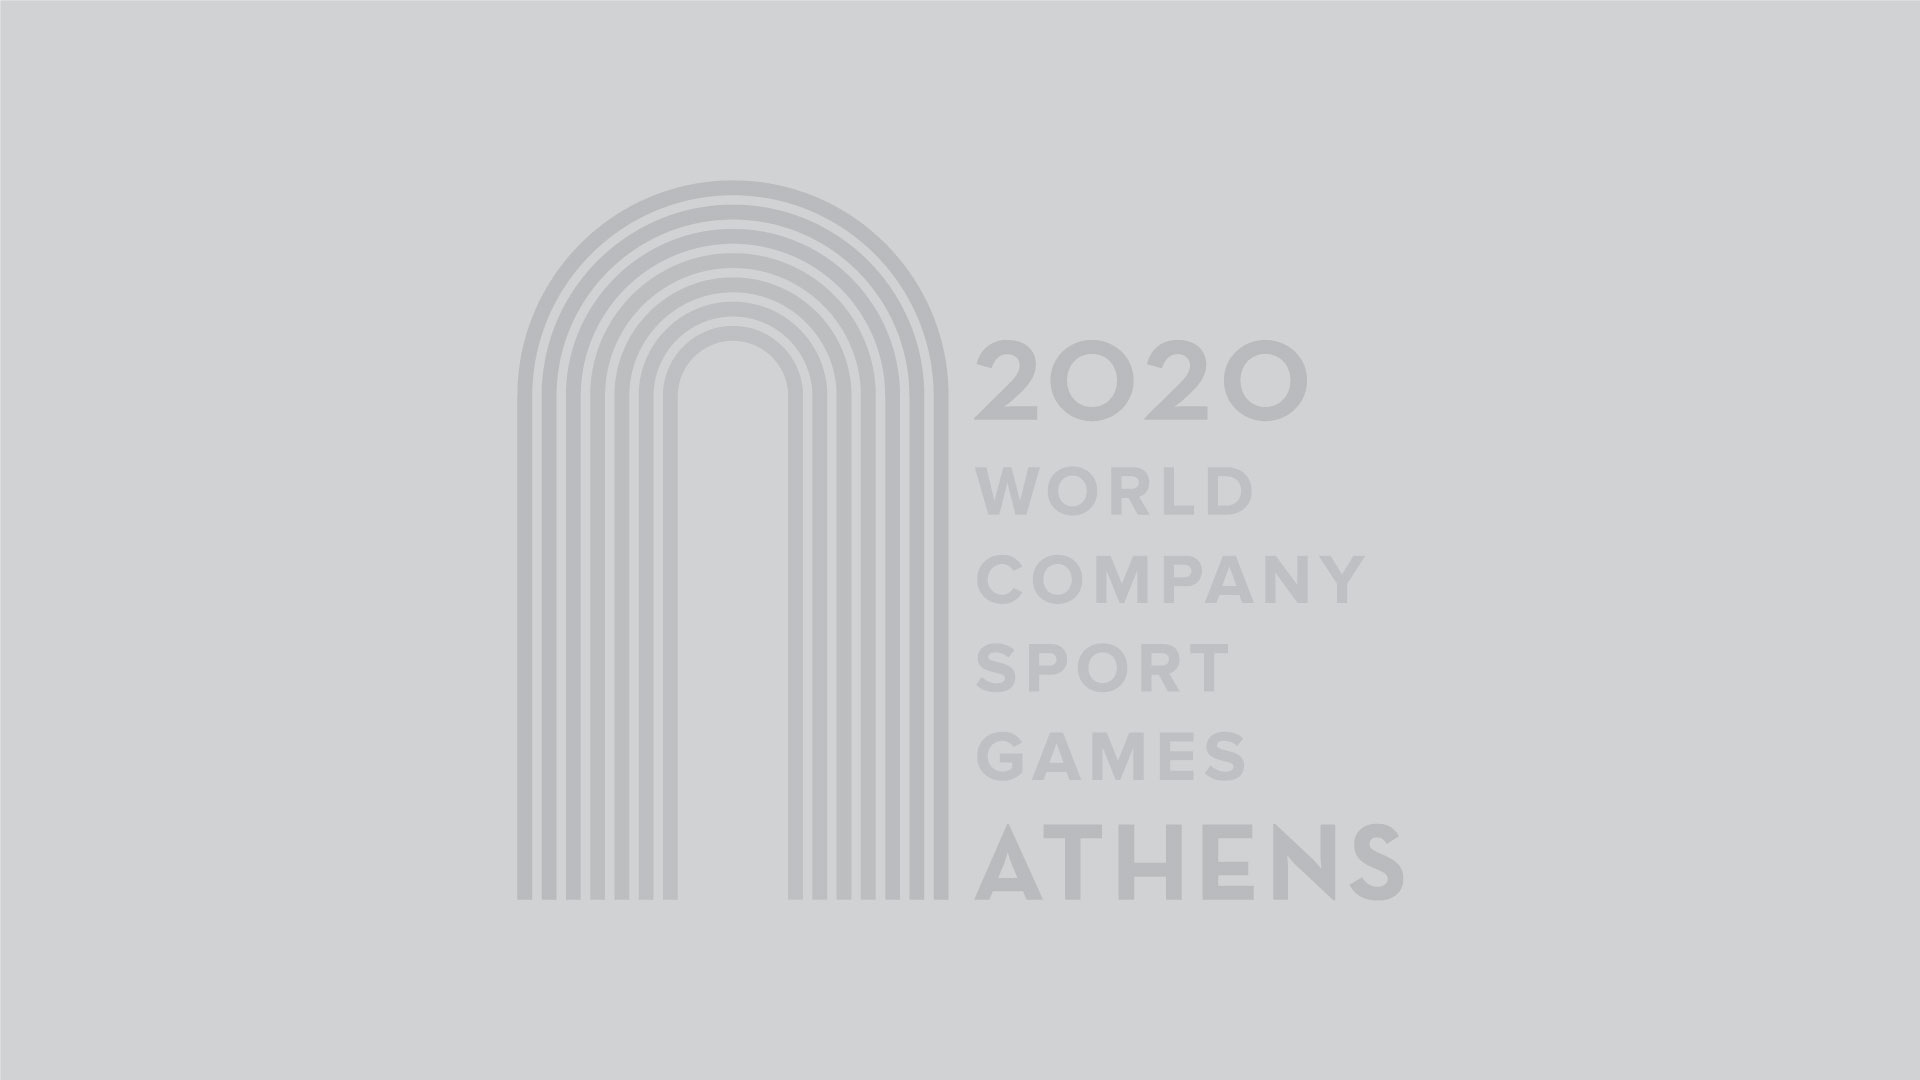 https://www.athens2020.org/sites/default/files/revslider/image/wcsg2020.jpg